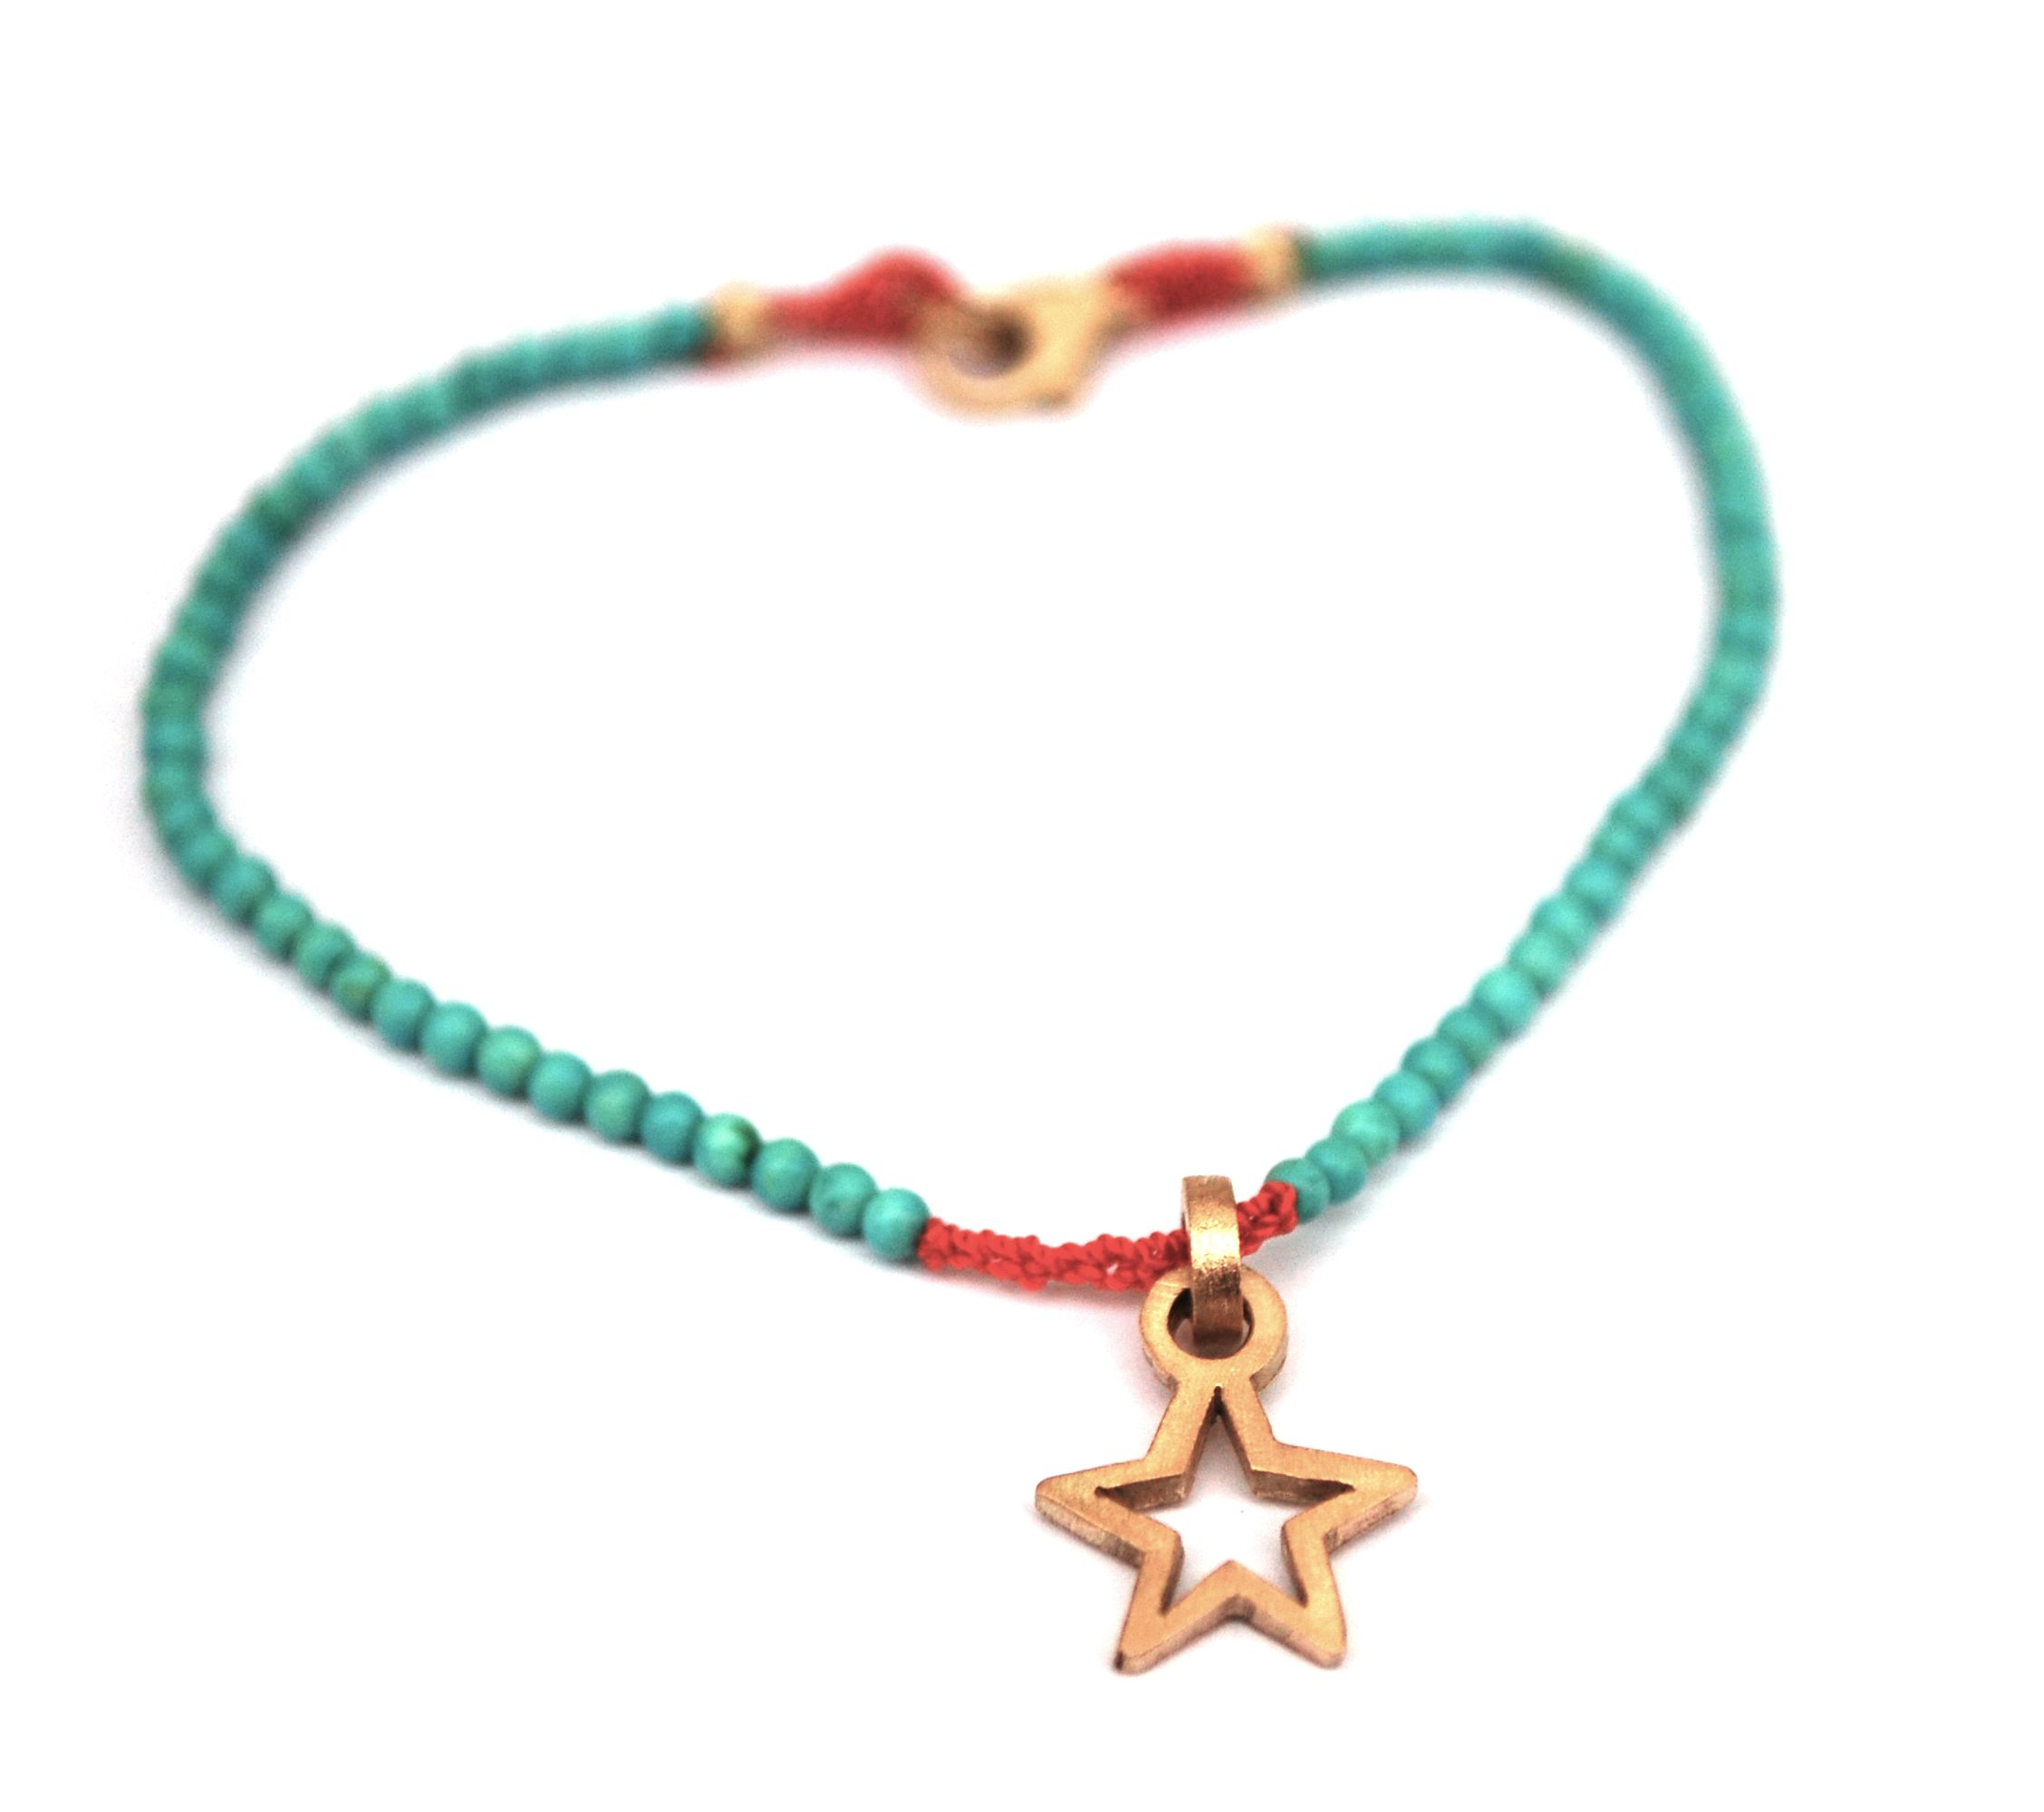 Turquoise bracelet with a star pendant made of fairtrade gold, hand made by Marije Geursen for GoLDFABRIK - Fairtrade Designer Jewelry Online Shop